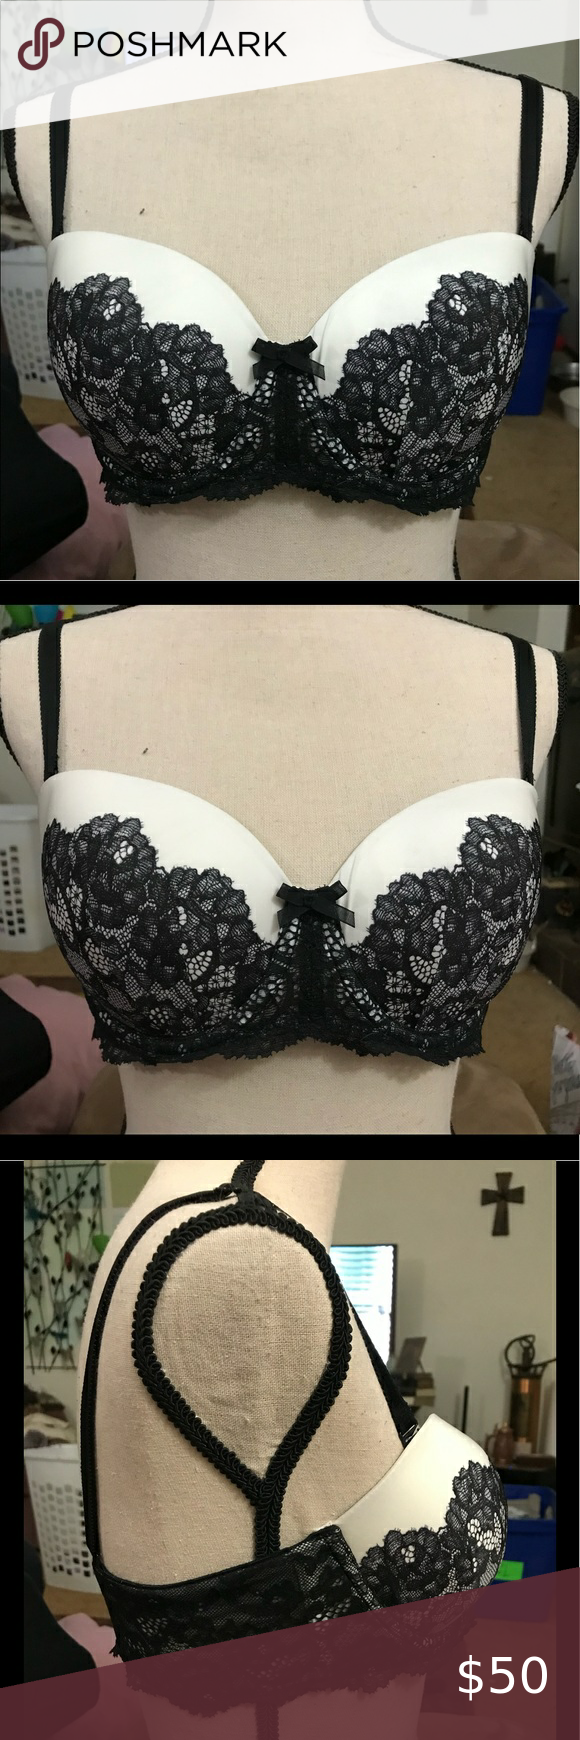 Dream Angels Bra VS Bra.  Dream Angels Multi-way.  Near perfect condition.  Size 36C. EUC. B1   We enjoy keeping certain brands/styles in our closet.  Please check our listings for similar brands, styles, & sizes. 🤩Many of the items in my closet are used and show varying amounts of wear.  I provide pictures to review.Please feel free to ask, I will follow up pics/details etc.  Smoke free & pet friendly.🤩 Victoria's Secret Intimates & Sleepwear Bras